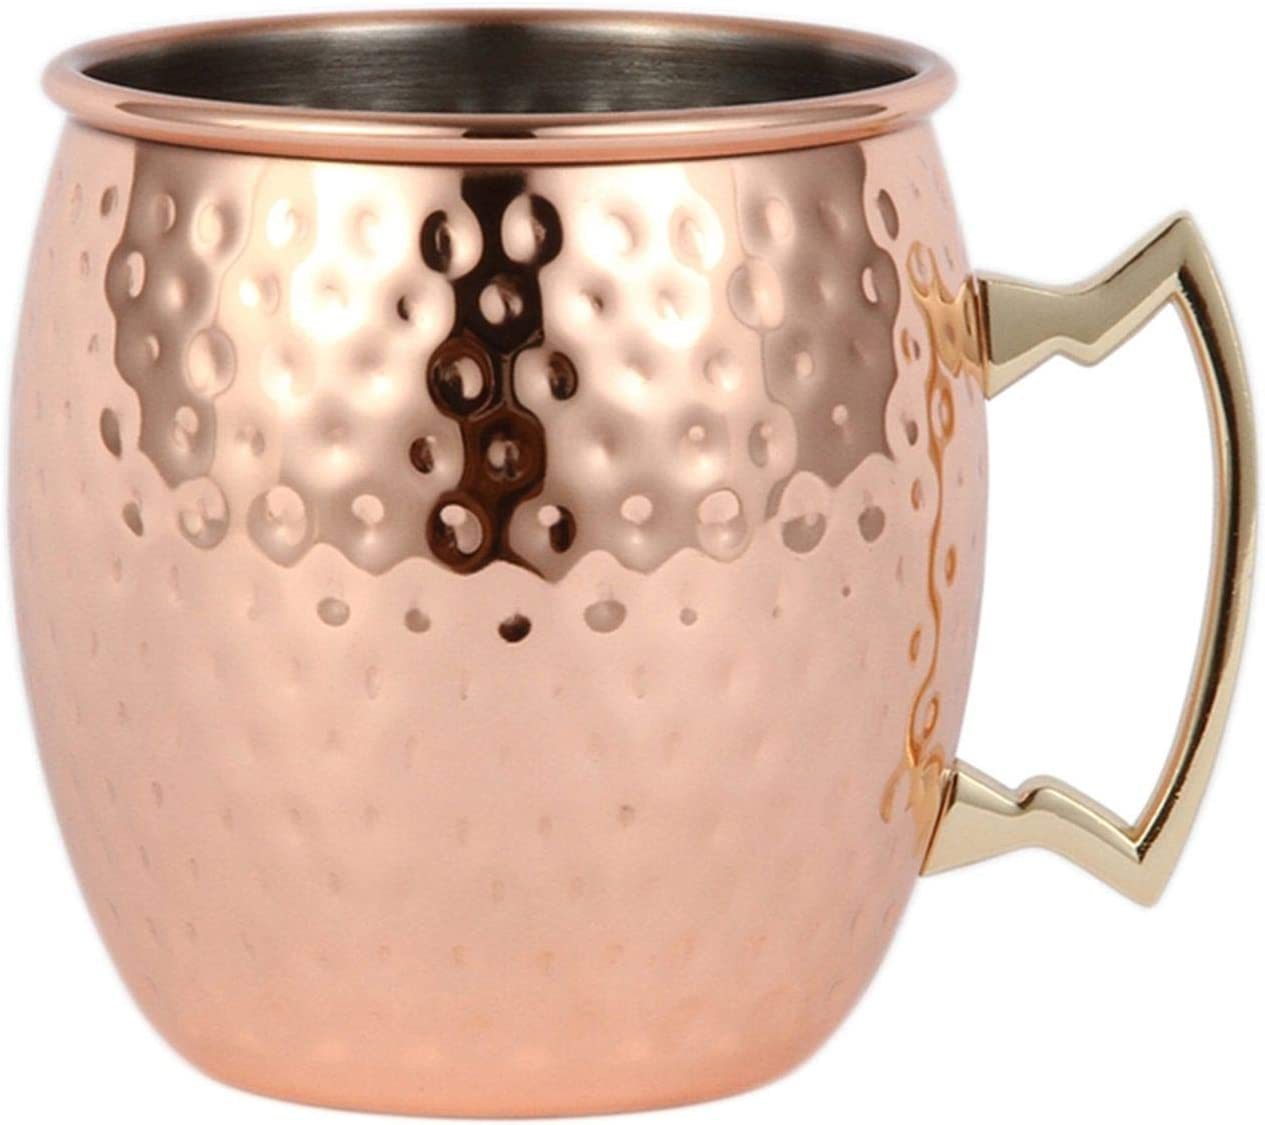 Hammered Moscow Mule Mug Drinking Cup Stainless Steel Copper Plated Cup 16 Oz US